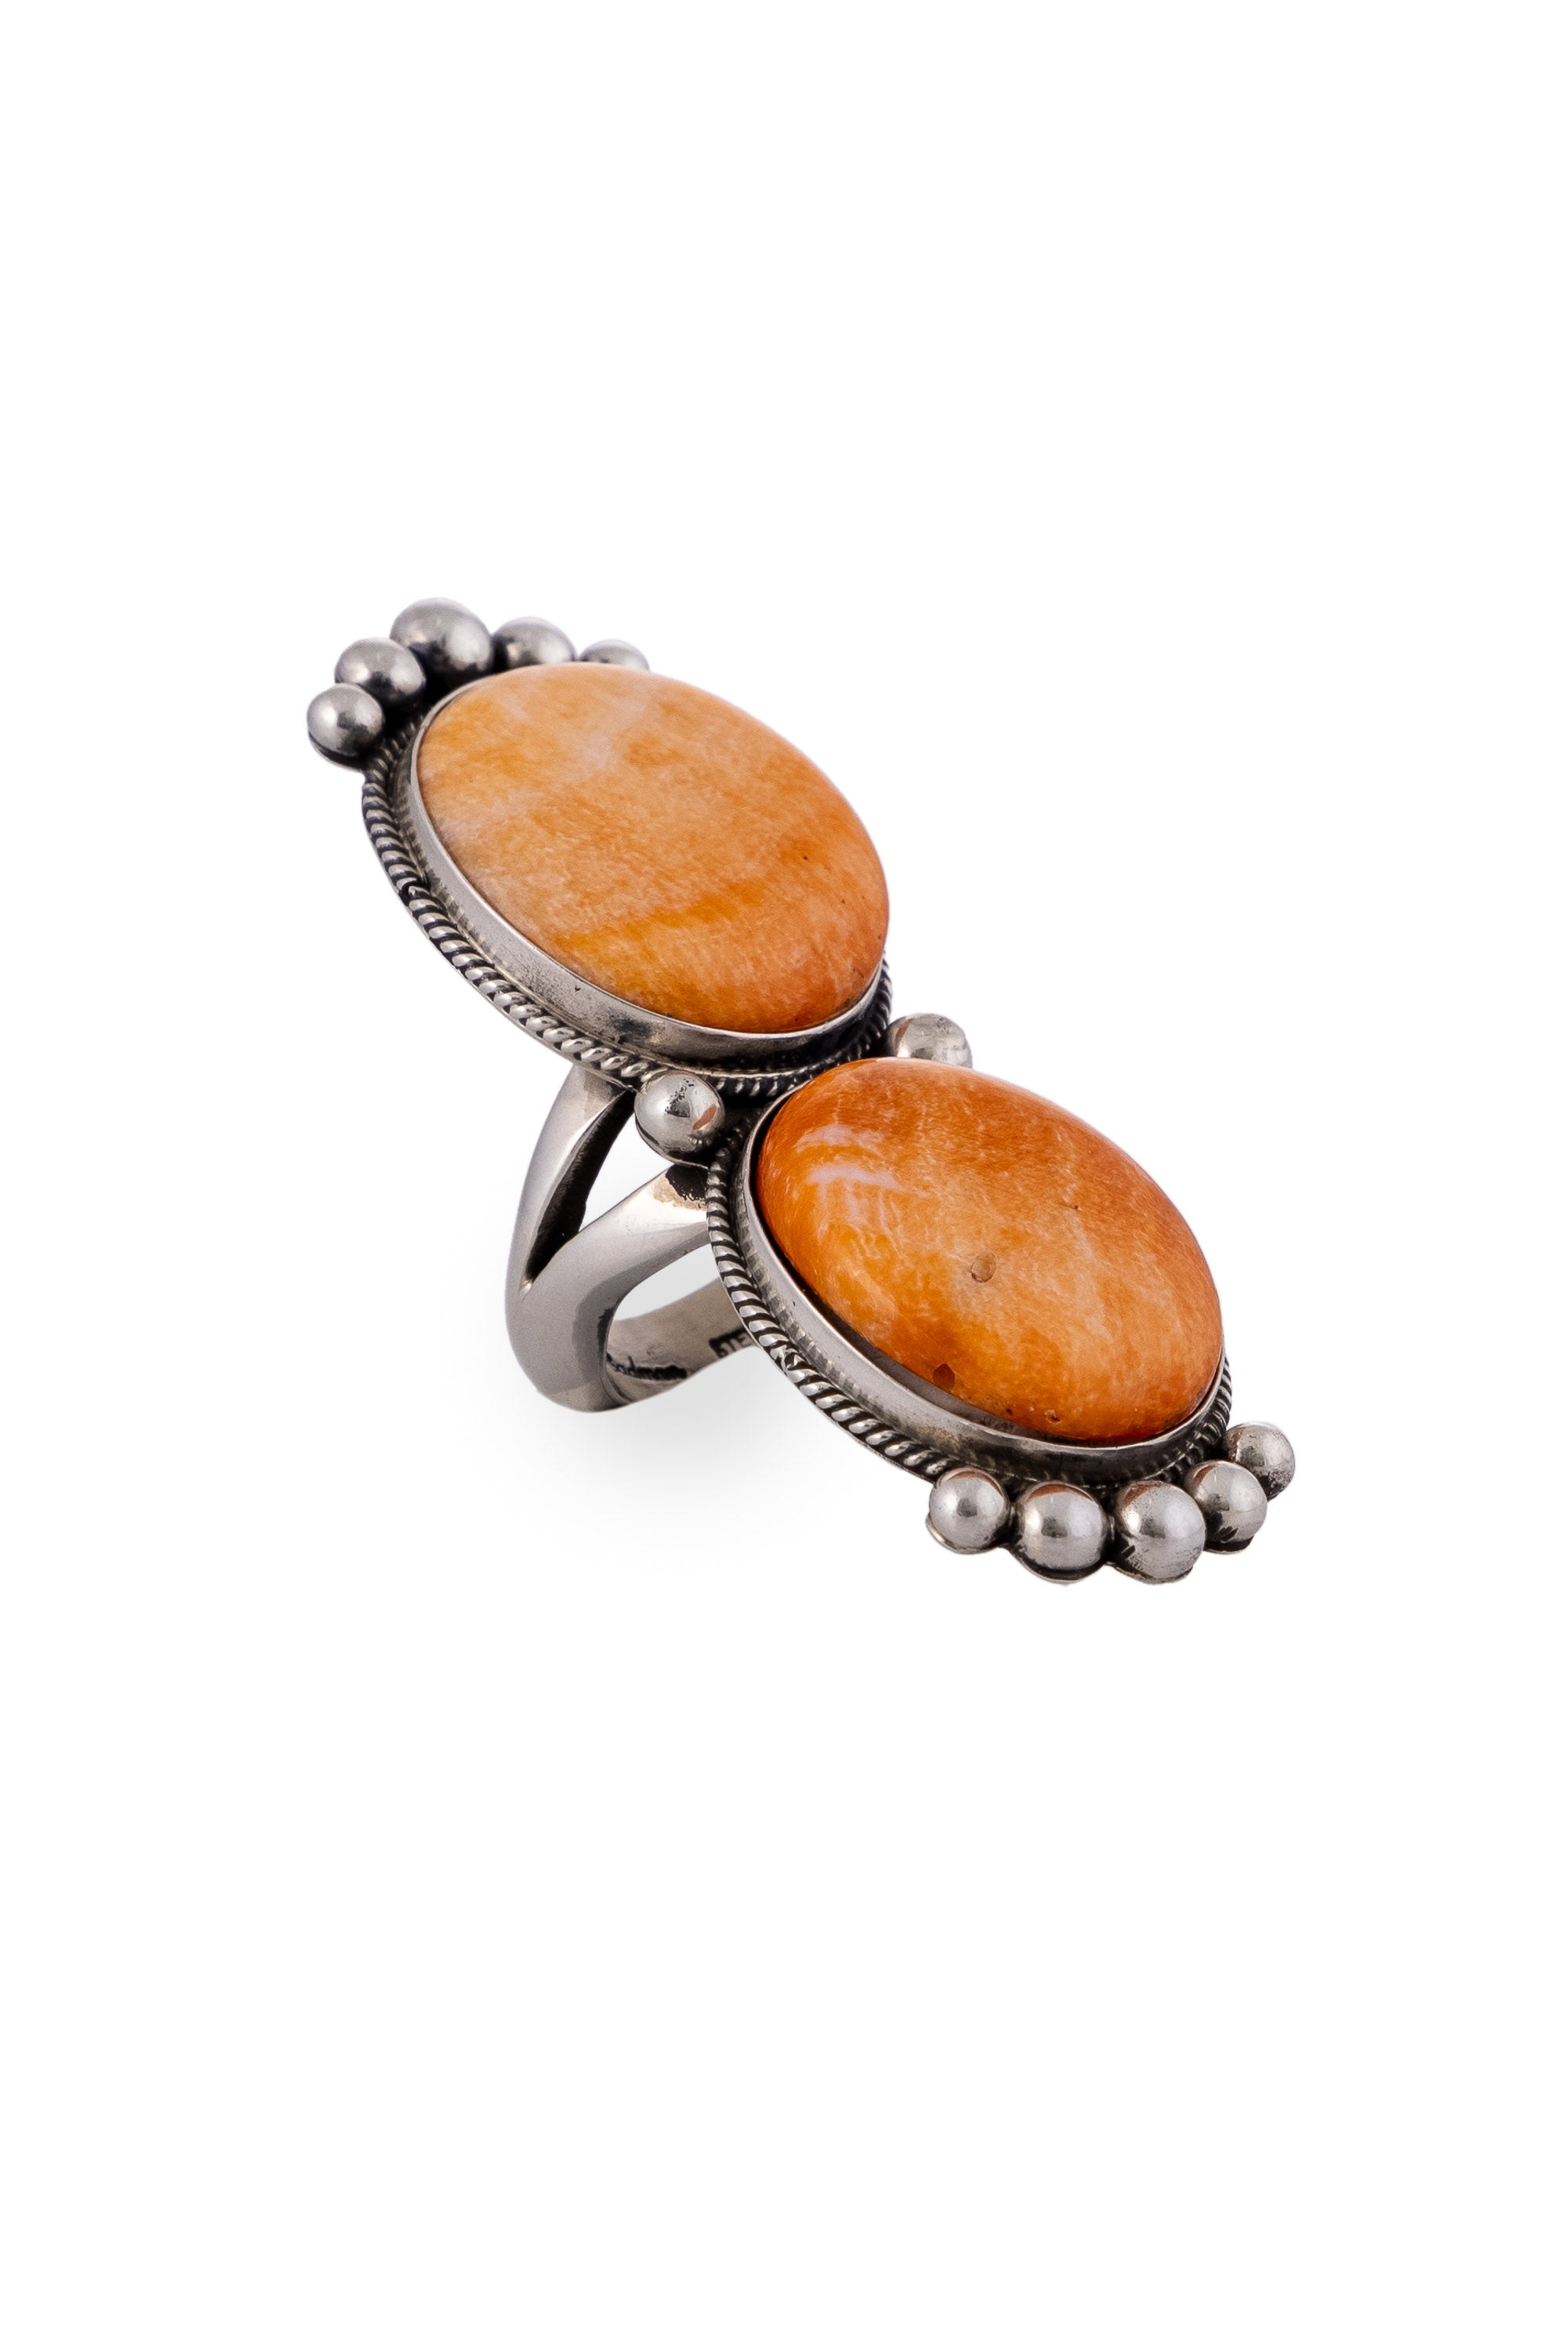 Ring, Orange Spiny Oyster, Double Stone, Hallmark, 677